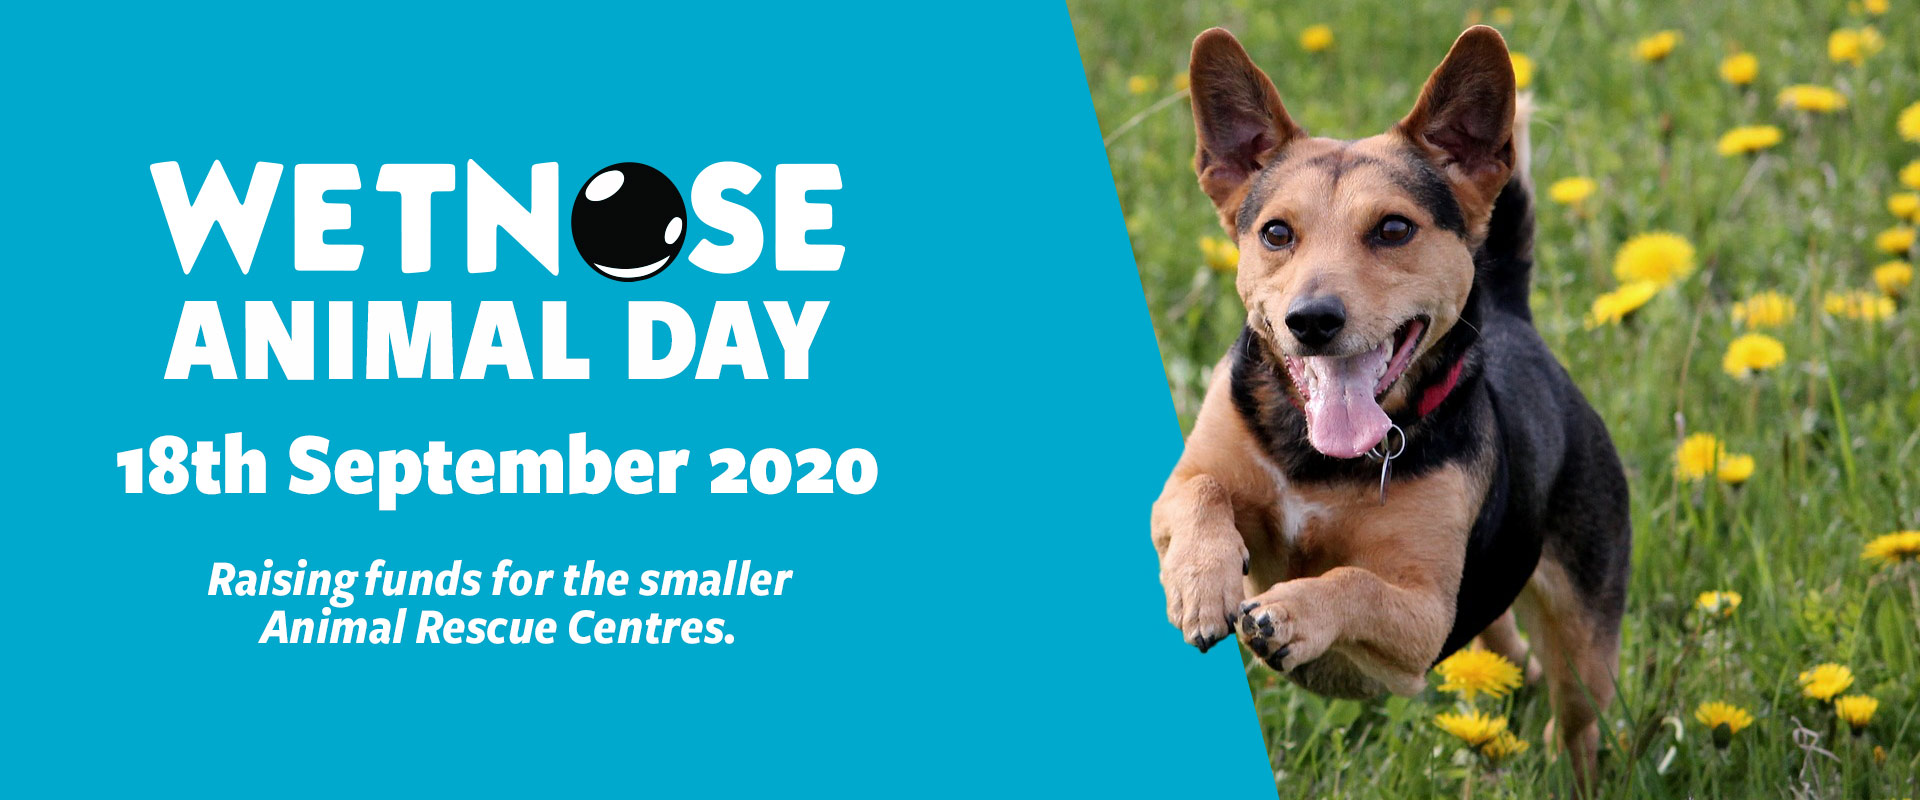 Wetnose Animal Day 2020